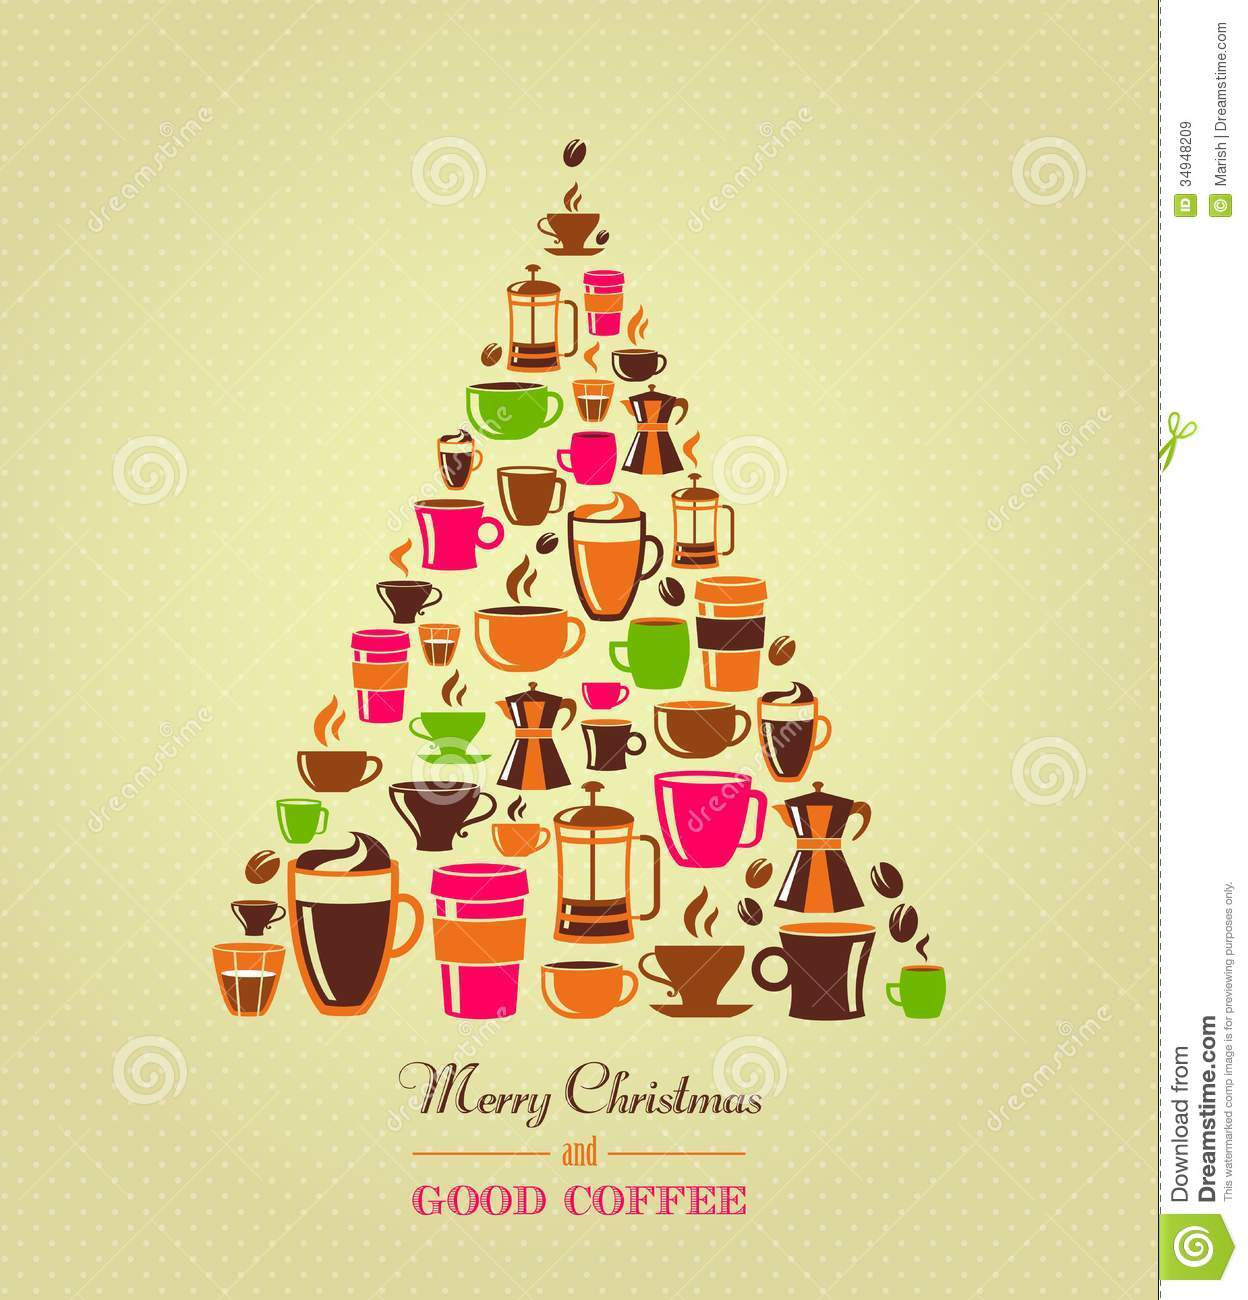 How to Get Free Coffee On Christmas How to Get Free Coffee On Christmas new foto